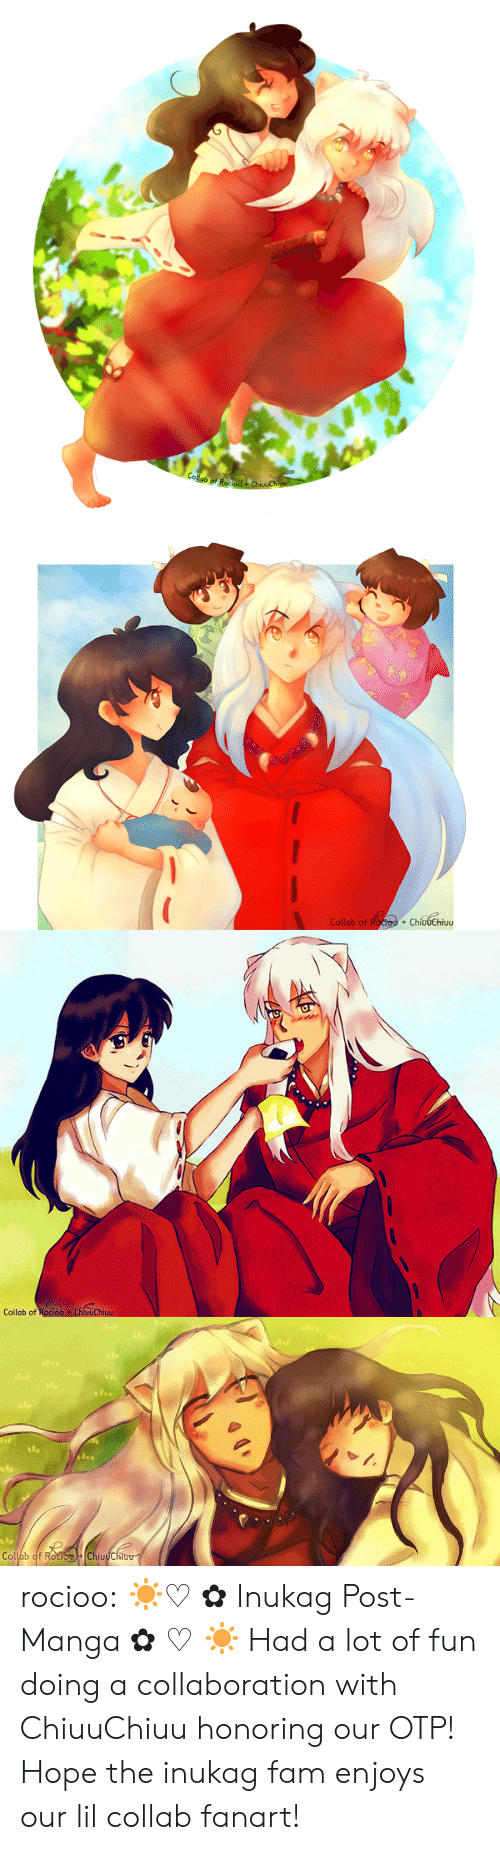 Enjoys: Collab of Roo  ChivuChi   Collab of Roctoo + ChíudChiuu  +   Collab of Rocioo ChluuChiuu   Op  Collab of RocioChiuuChiou rocioo:  ☀♡✿Inukag Post-Manga✿♡☀ Had a lot of fun doing a collaboration with ChiuuChiuuhonoring our OTP! Hope the inukag fam enjoys our lil collab fanart!